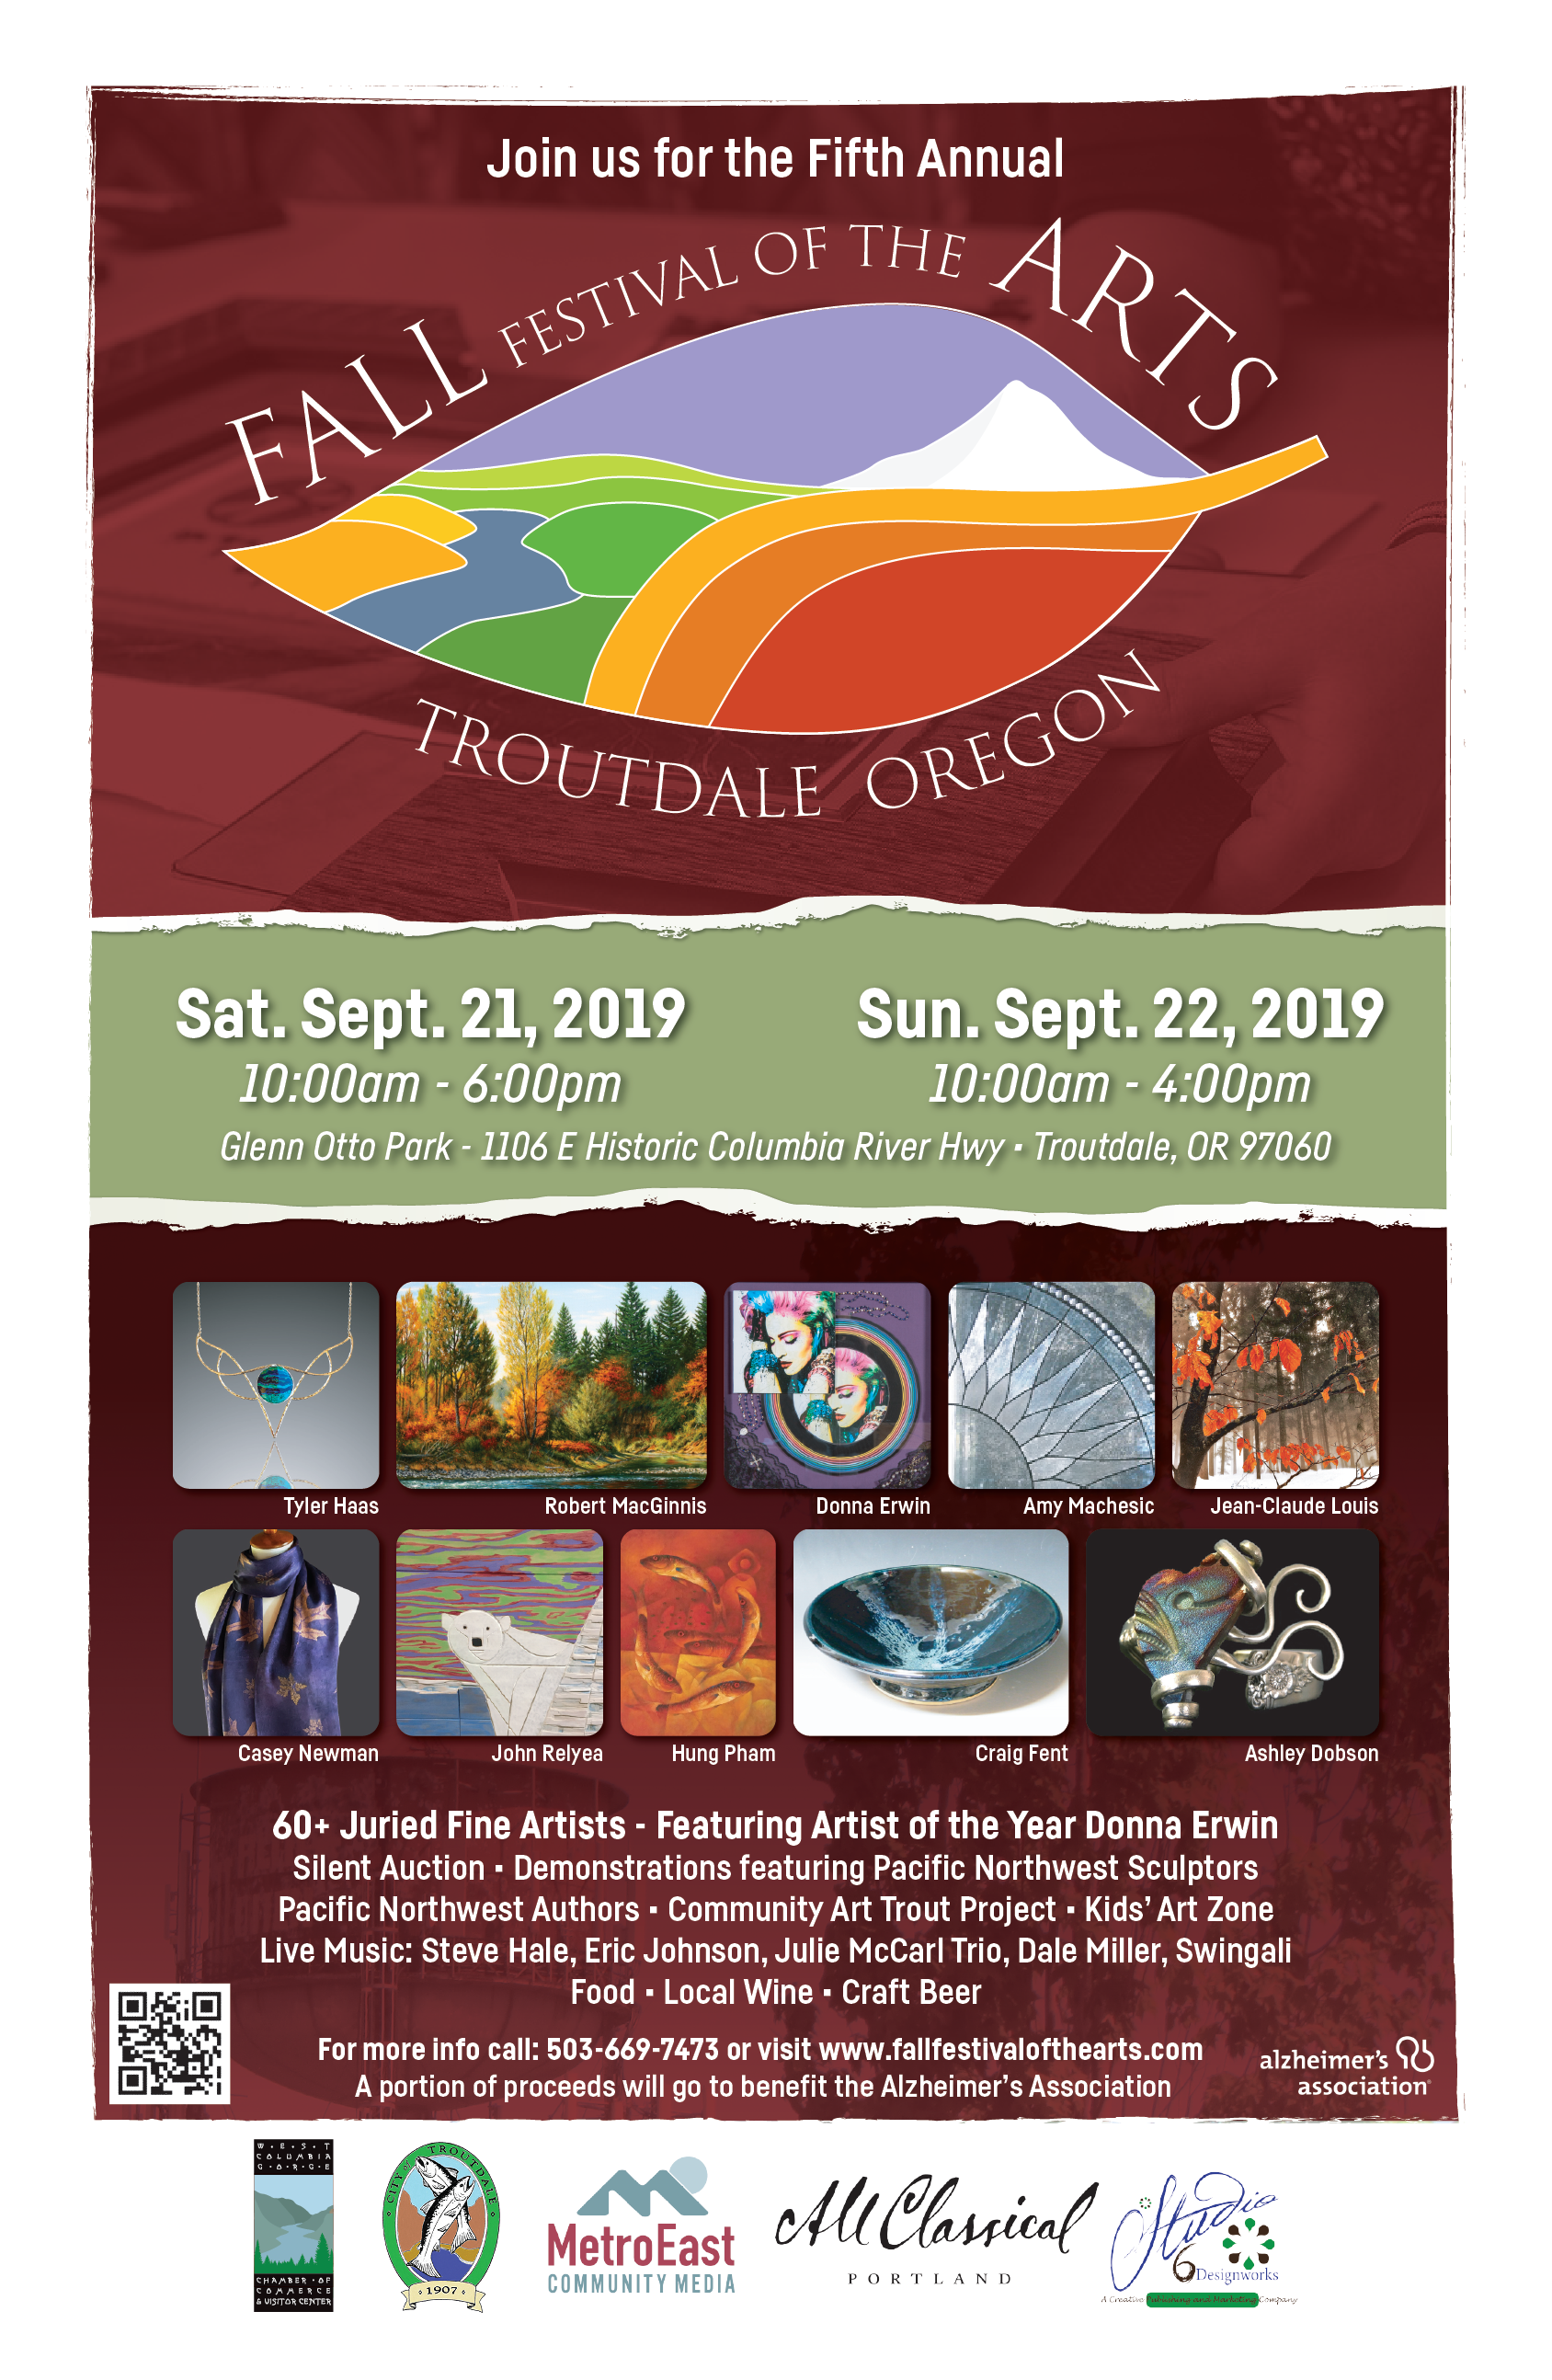 Fall Festival of the Arts Troutdale